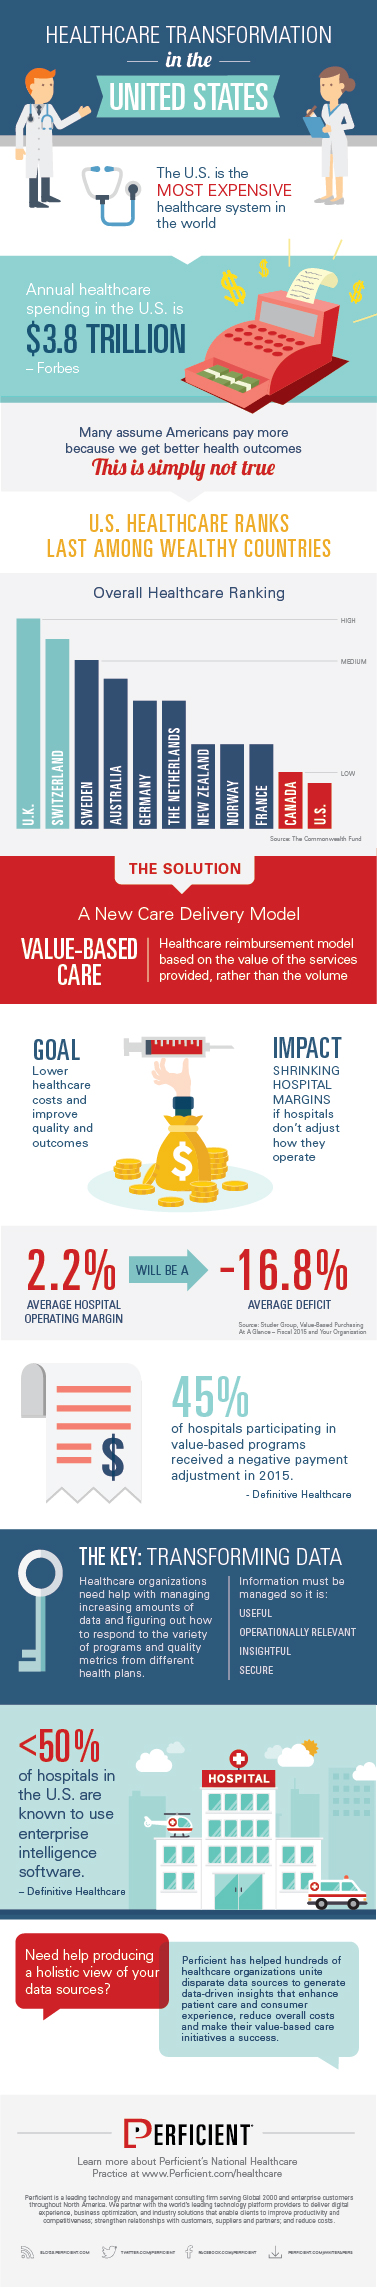 Infographic: Value-Based Care Transformation